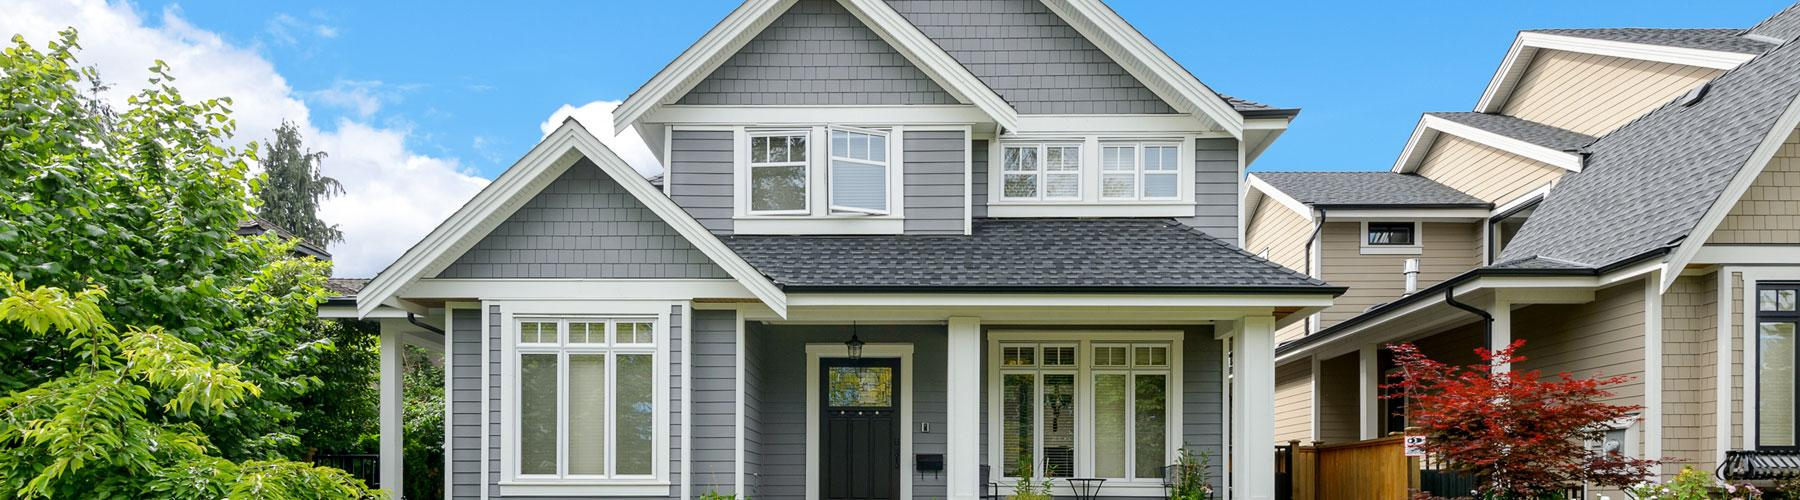 Residentialroofing